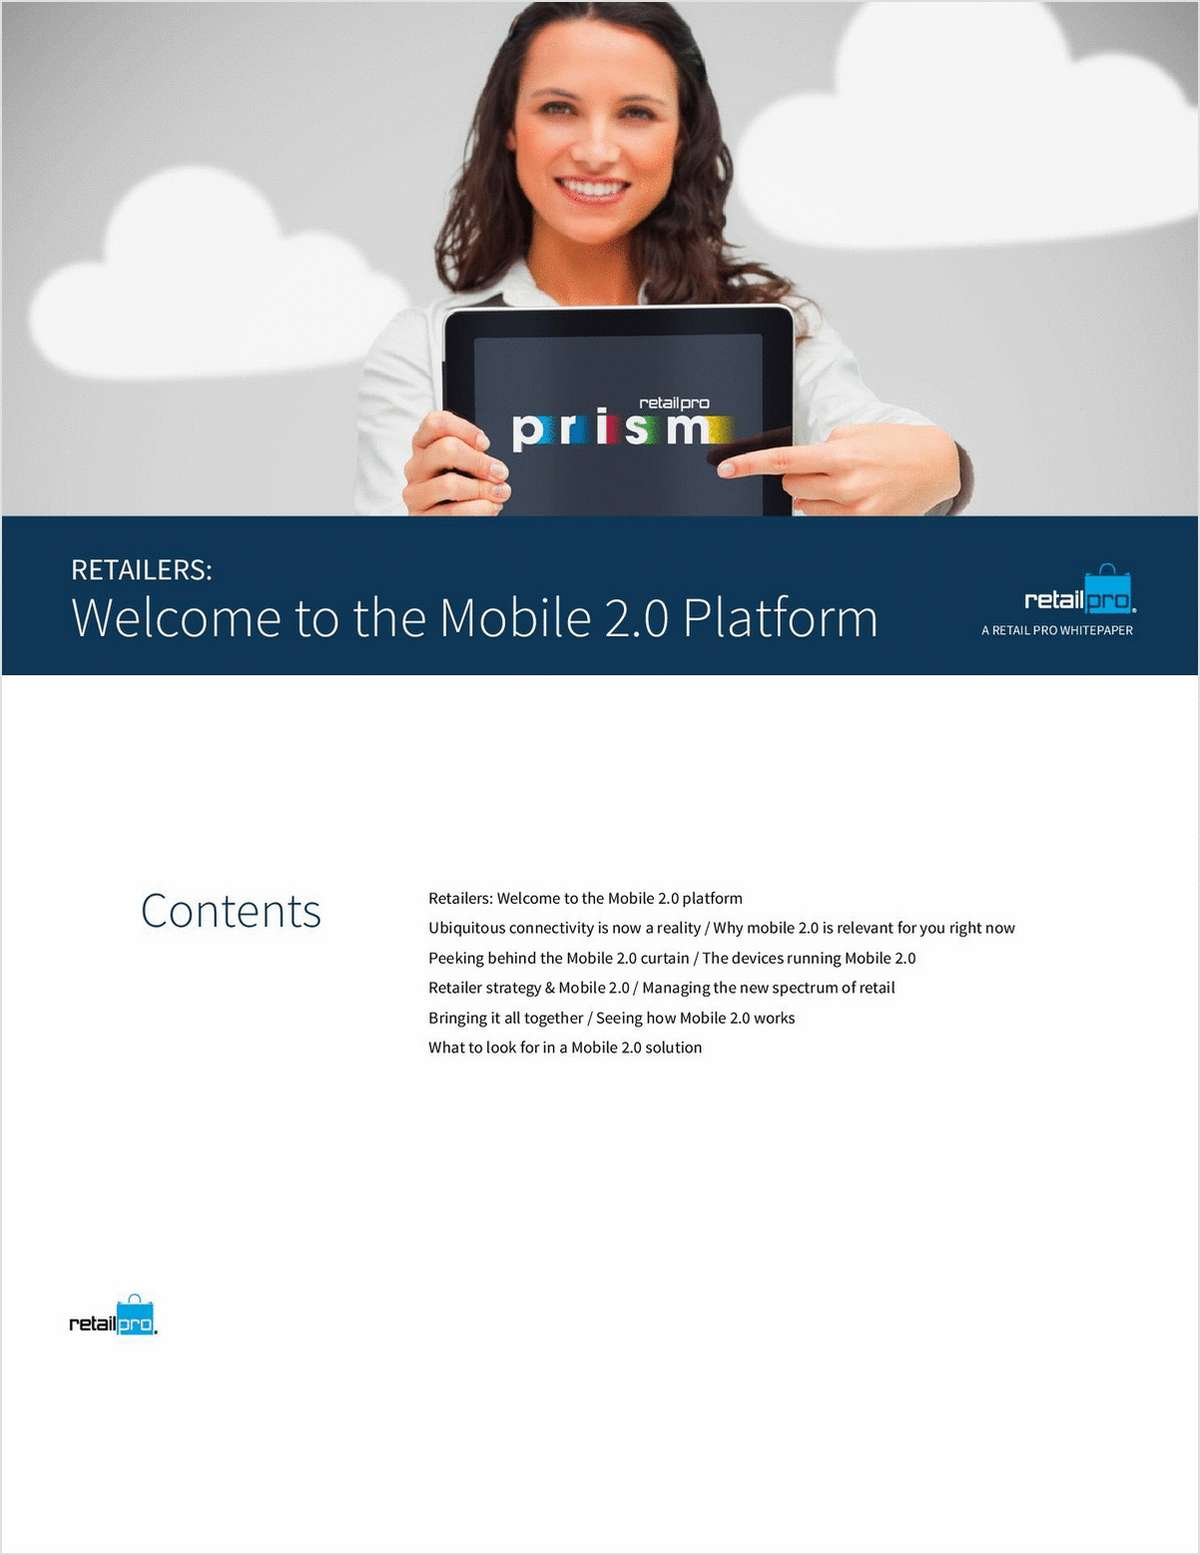 Retailers: Welcome to the Mobile 2.0 Platform